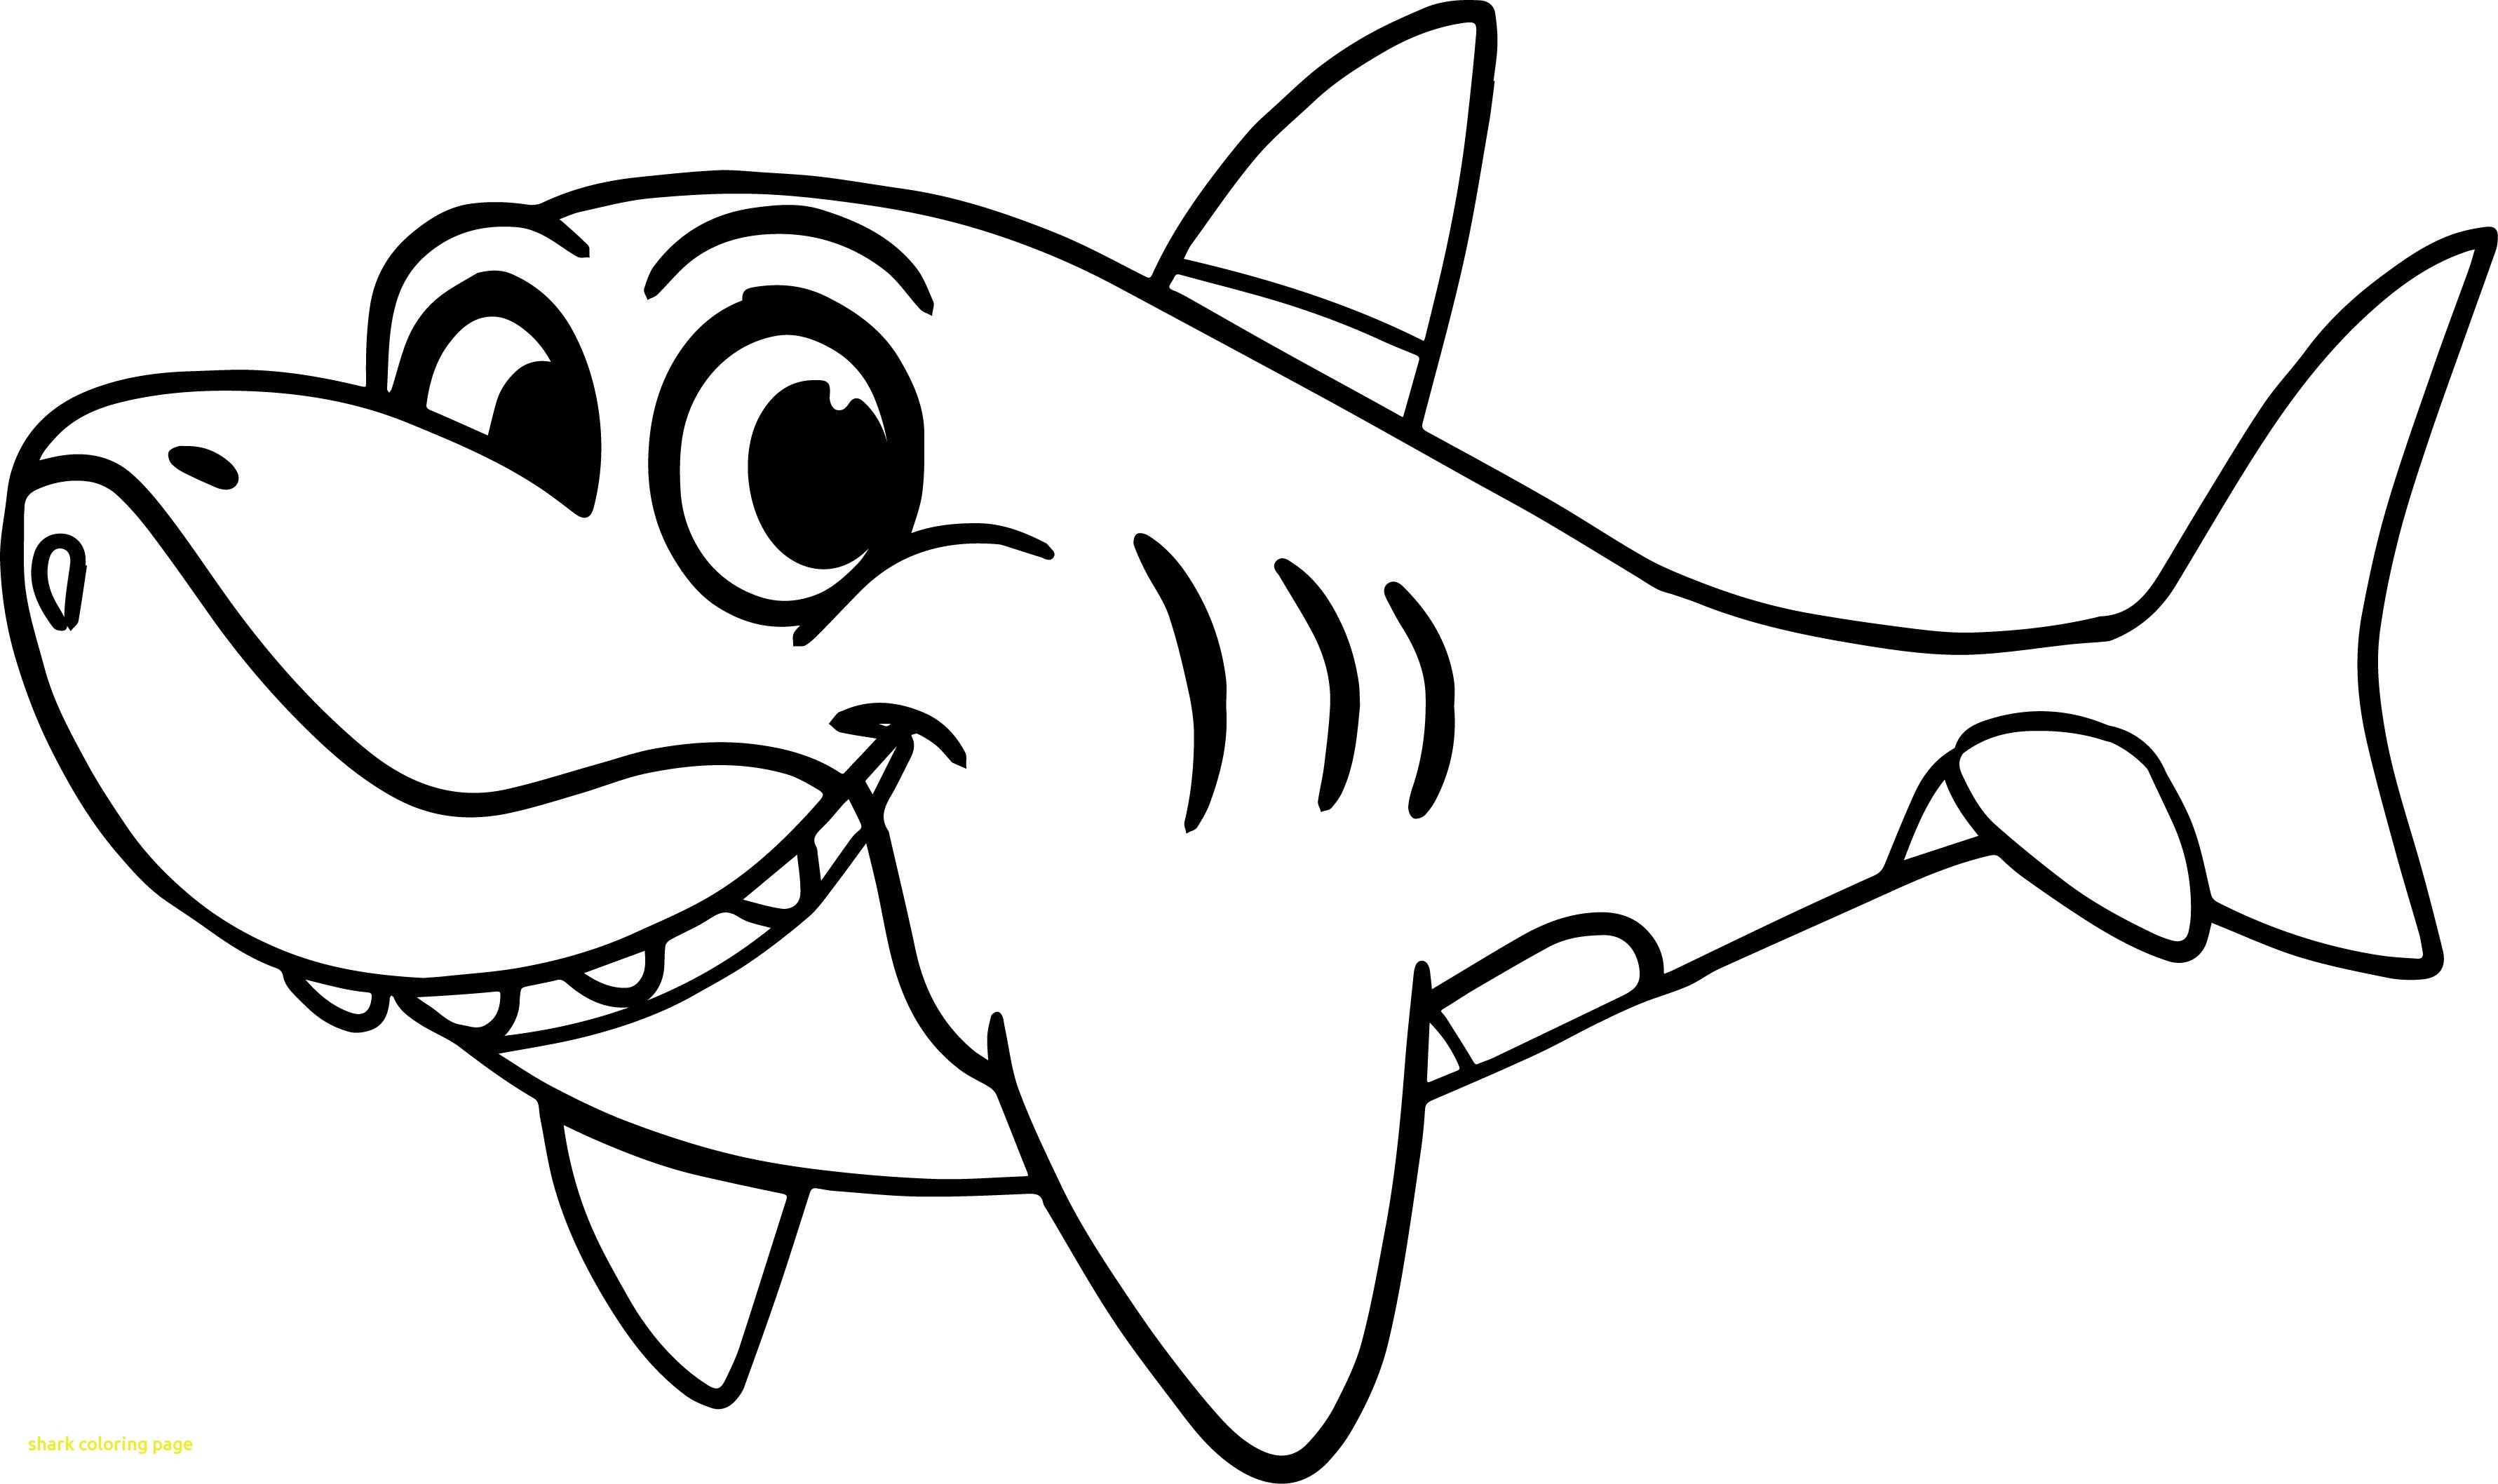 Mouth Coloring Page